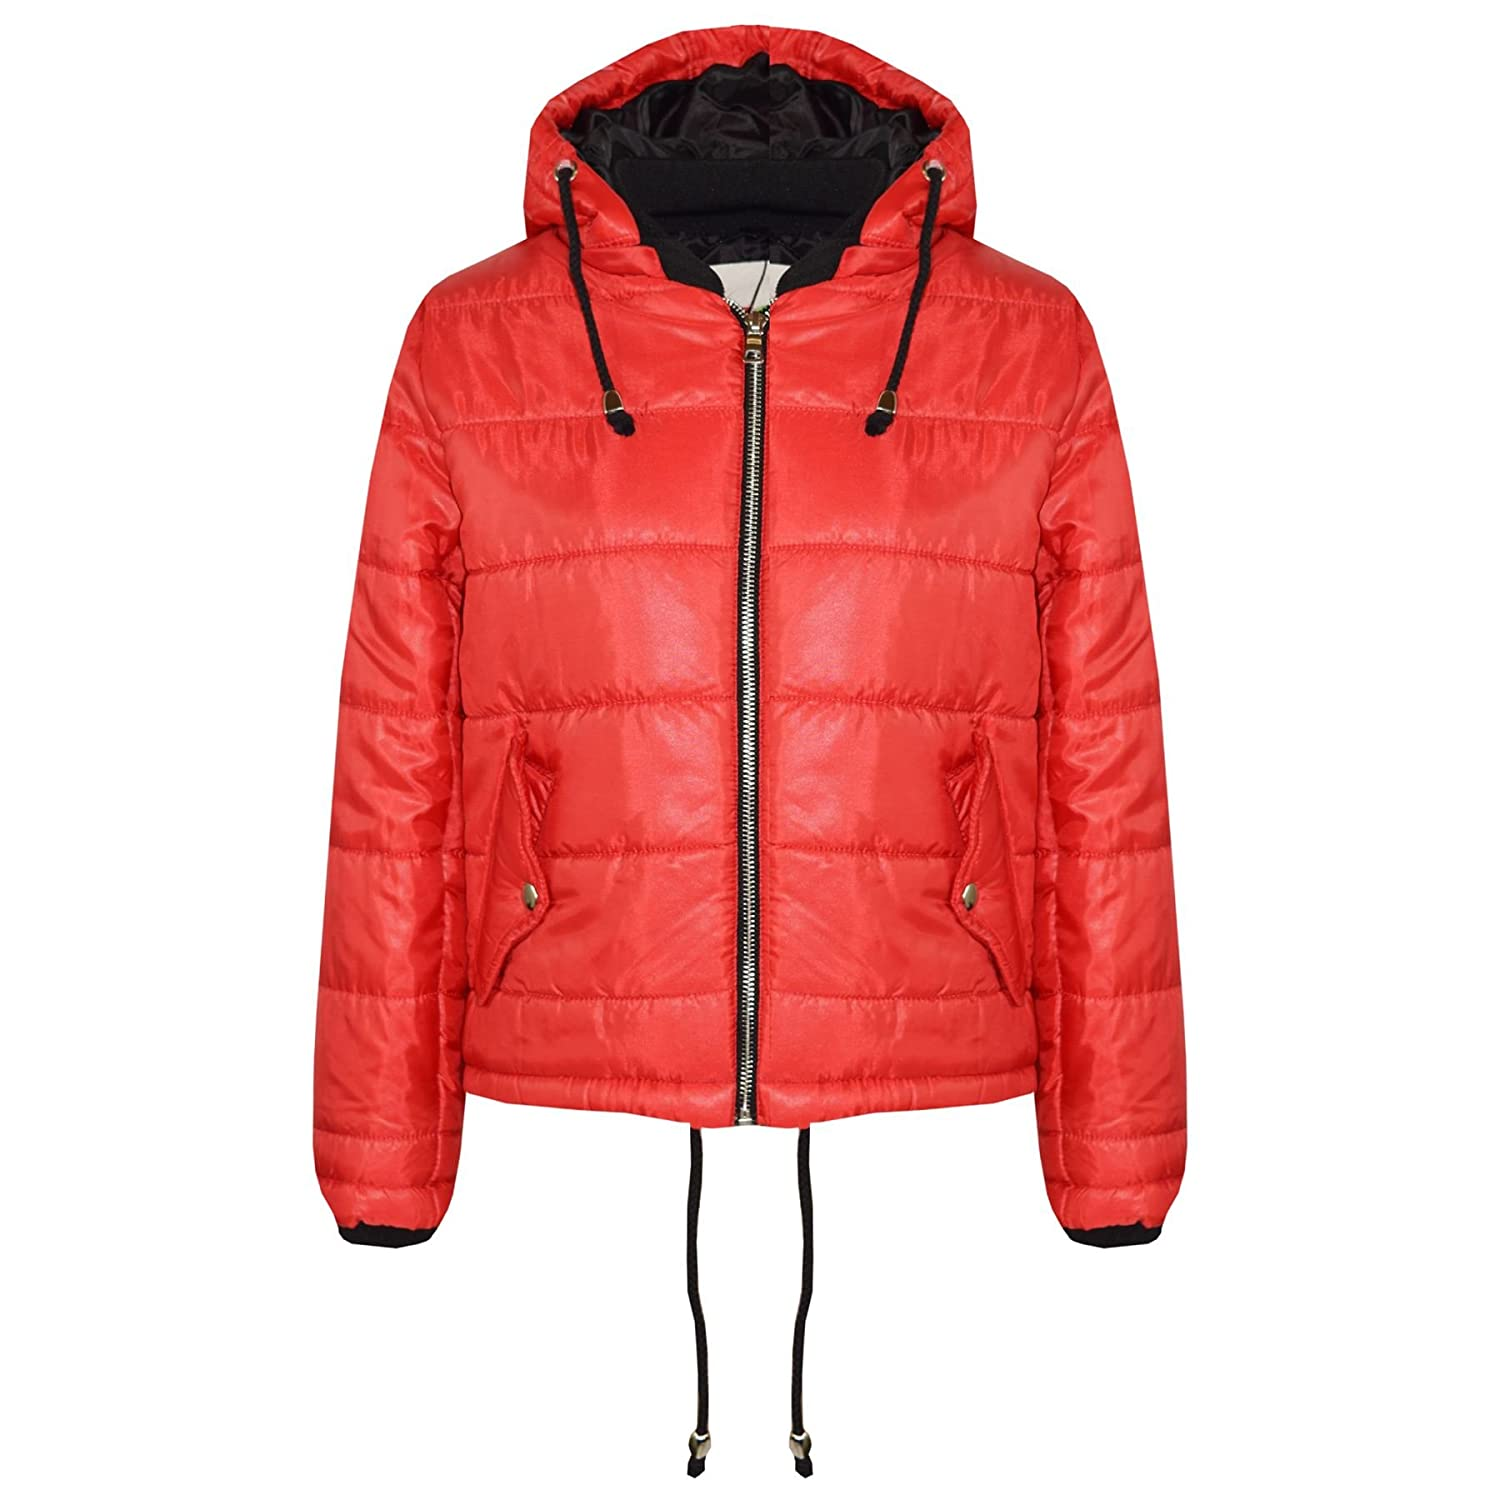 A2Z 4 Kids® Girls Jacket Kids Designer's Bella High Shine Hooded Hoodie Padded Quilted Puffer Jackets Warm Thick Coats New Age 5 6 7 8 9 10 11 12 13 Years